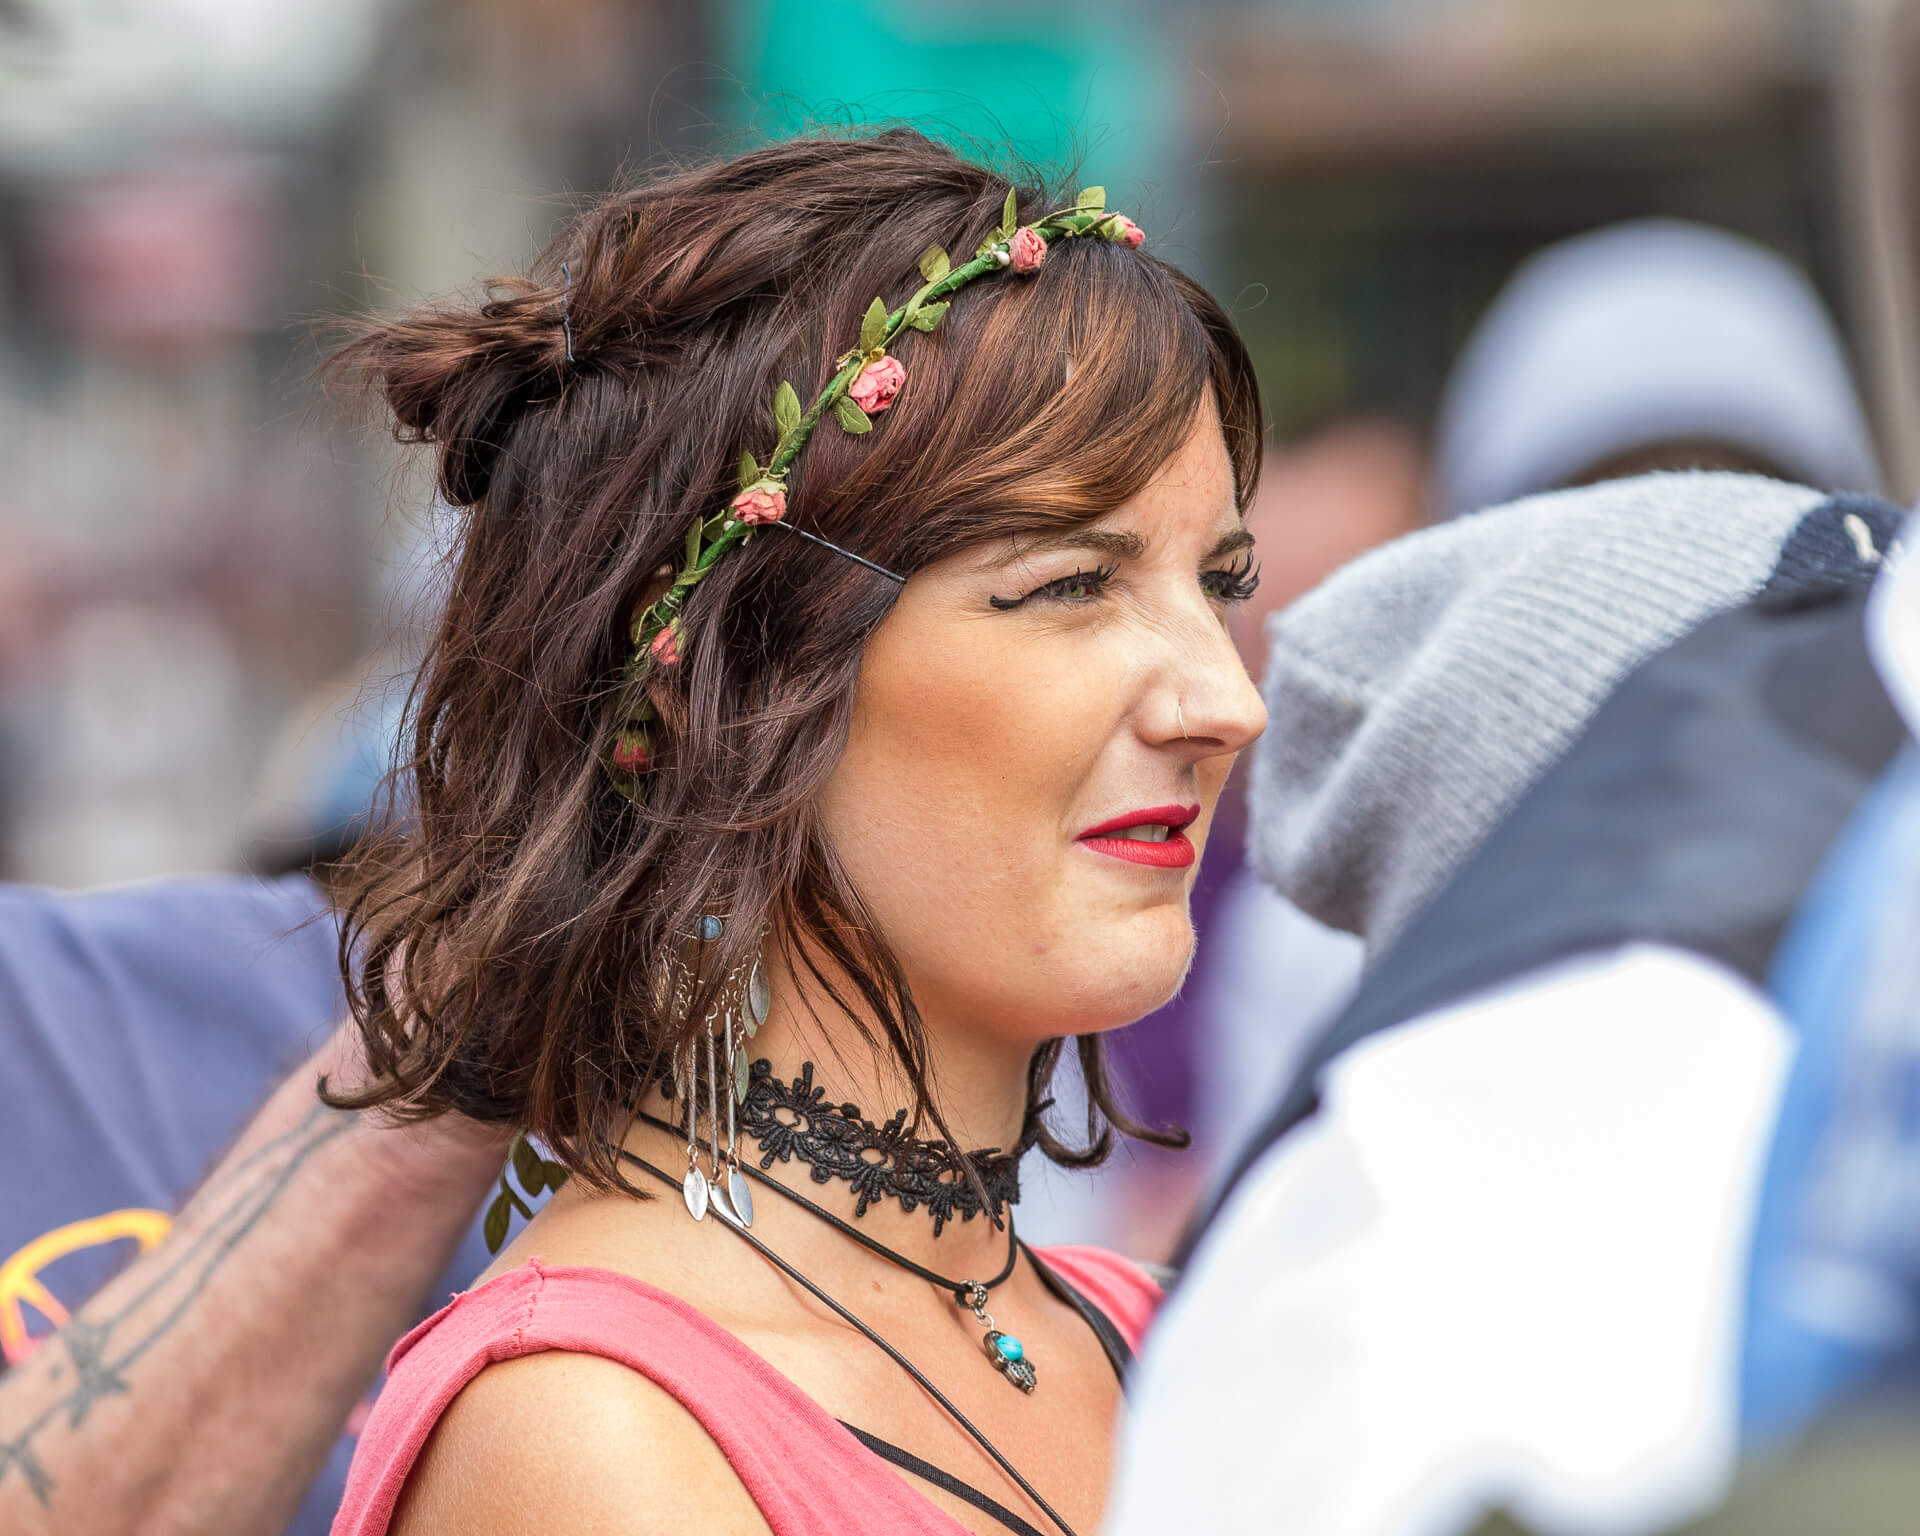 A close up colour head & shoulders image of one of the female marchers on the BNP Marches in Worcester. She wears a decorative choker, bright red lipstick, distinctive eyeliner, and has a small garland of flowers in her hair.